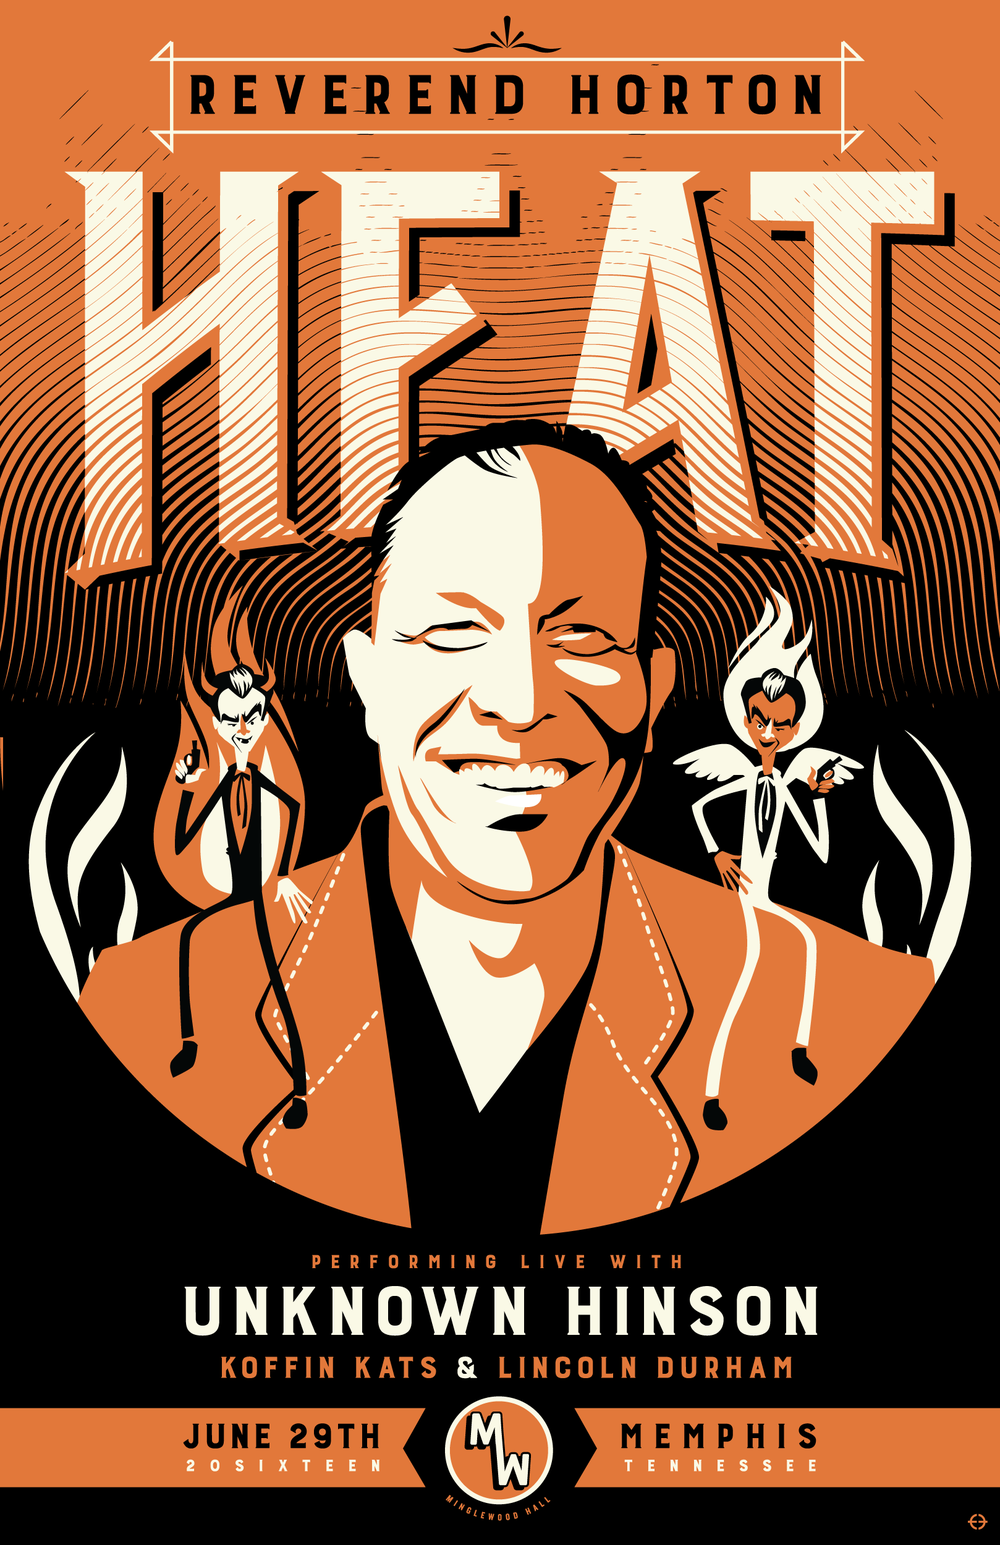 Reverend Horton Heat with Unknown Hinson